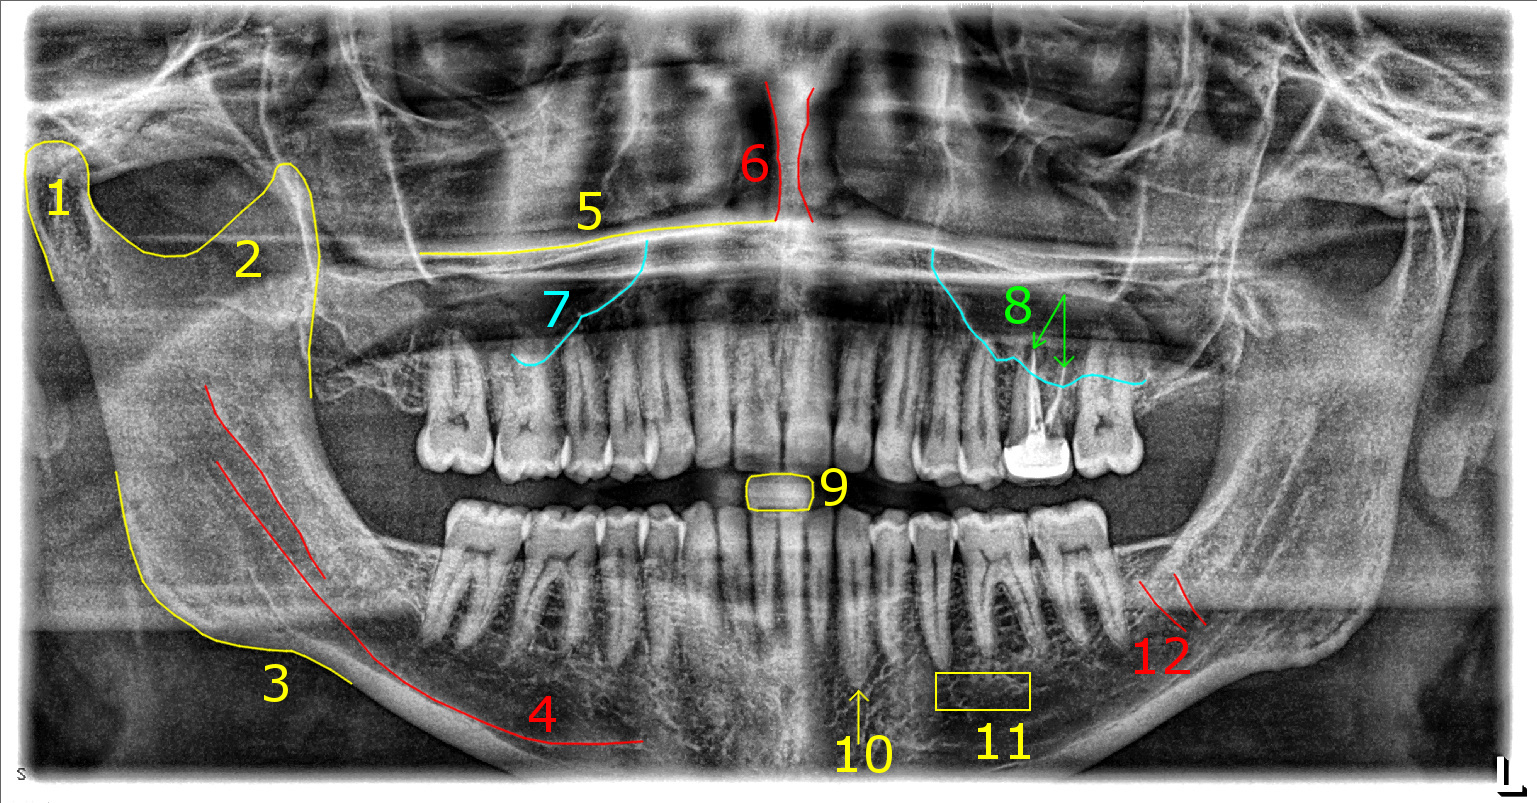 Smile Fun Things To Look For In Your Dental X Rays